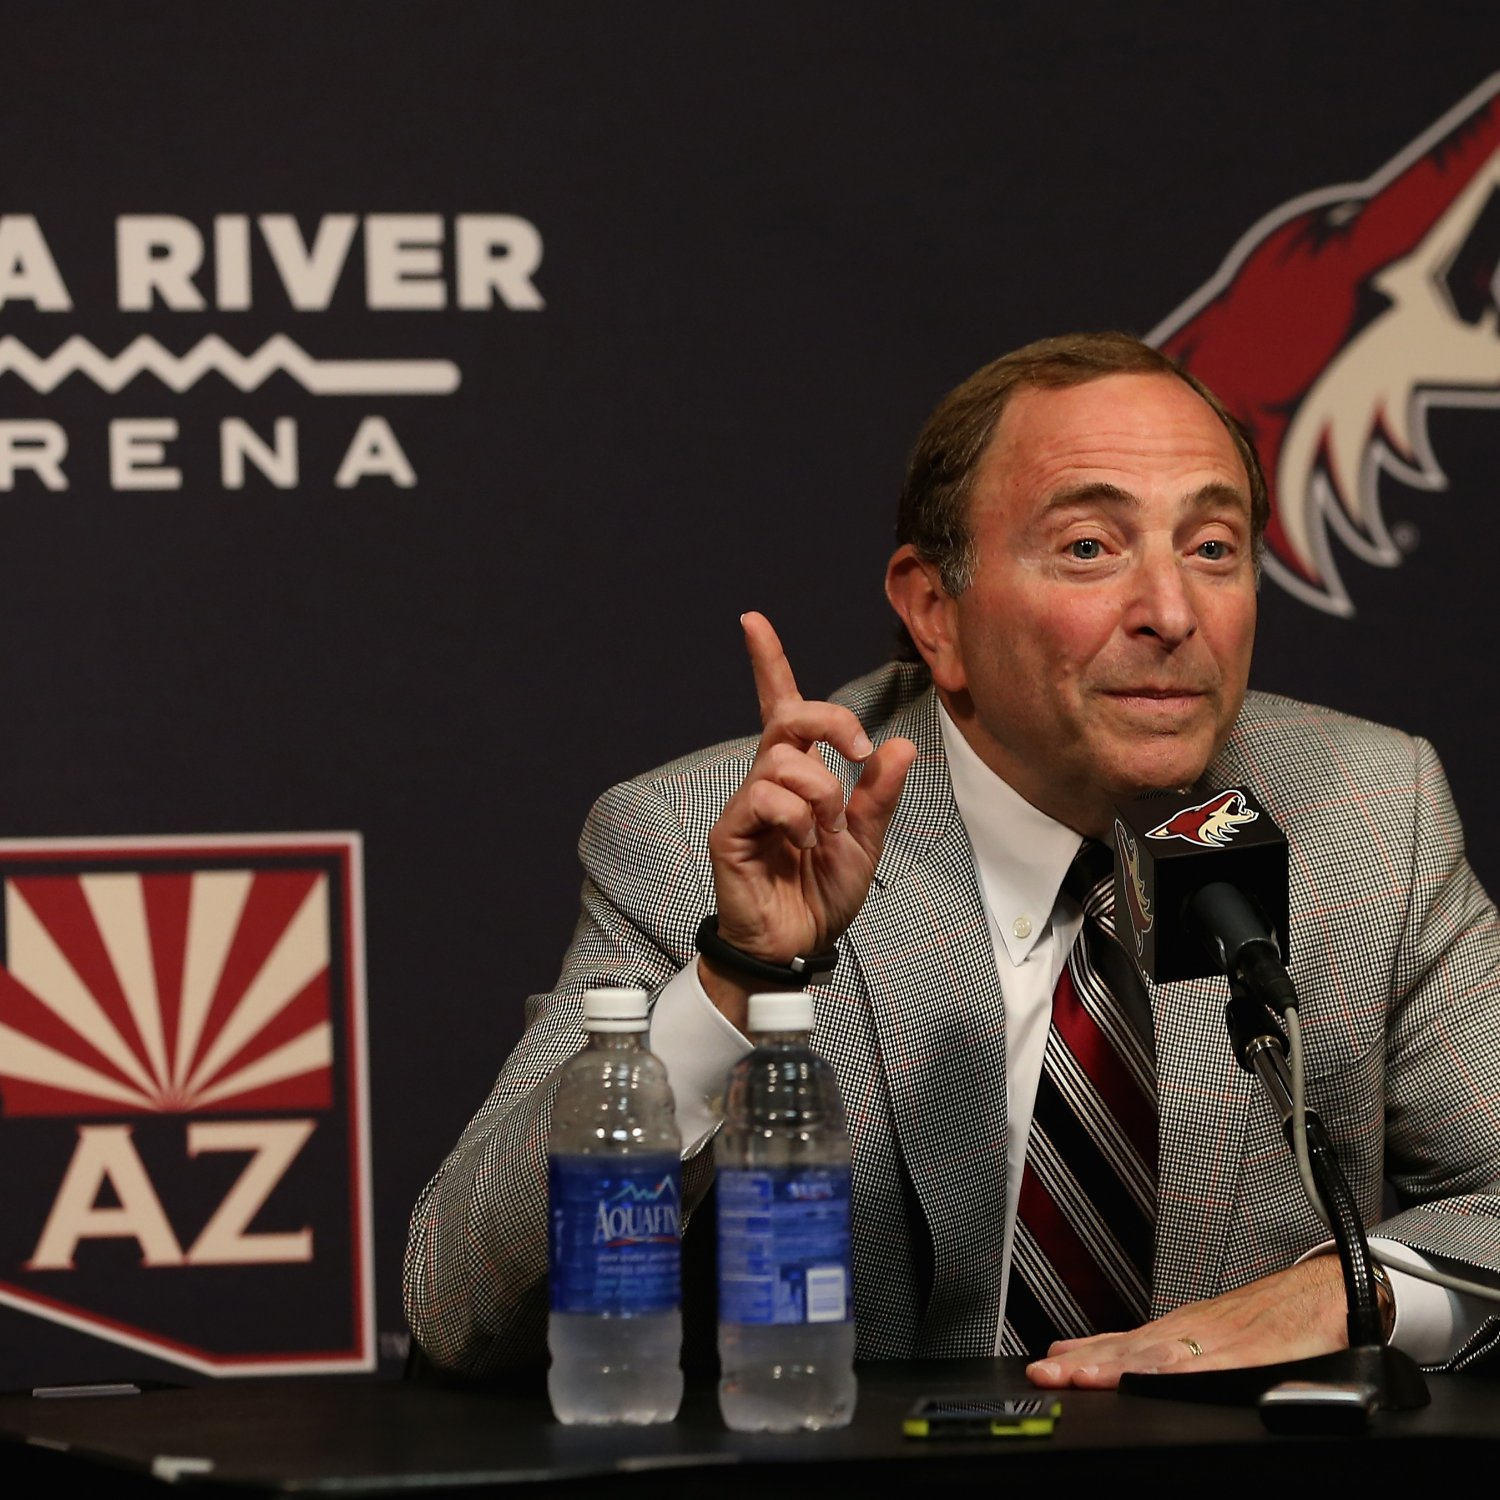 Gary Bettman Denies Report Arizona Coyotes Will Move to Las Vegas - Bleacher Report